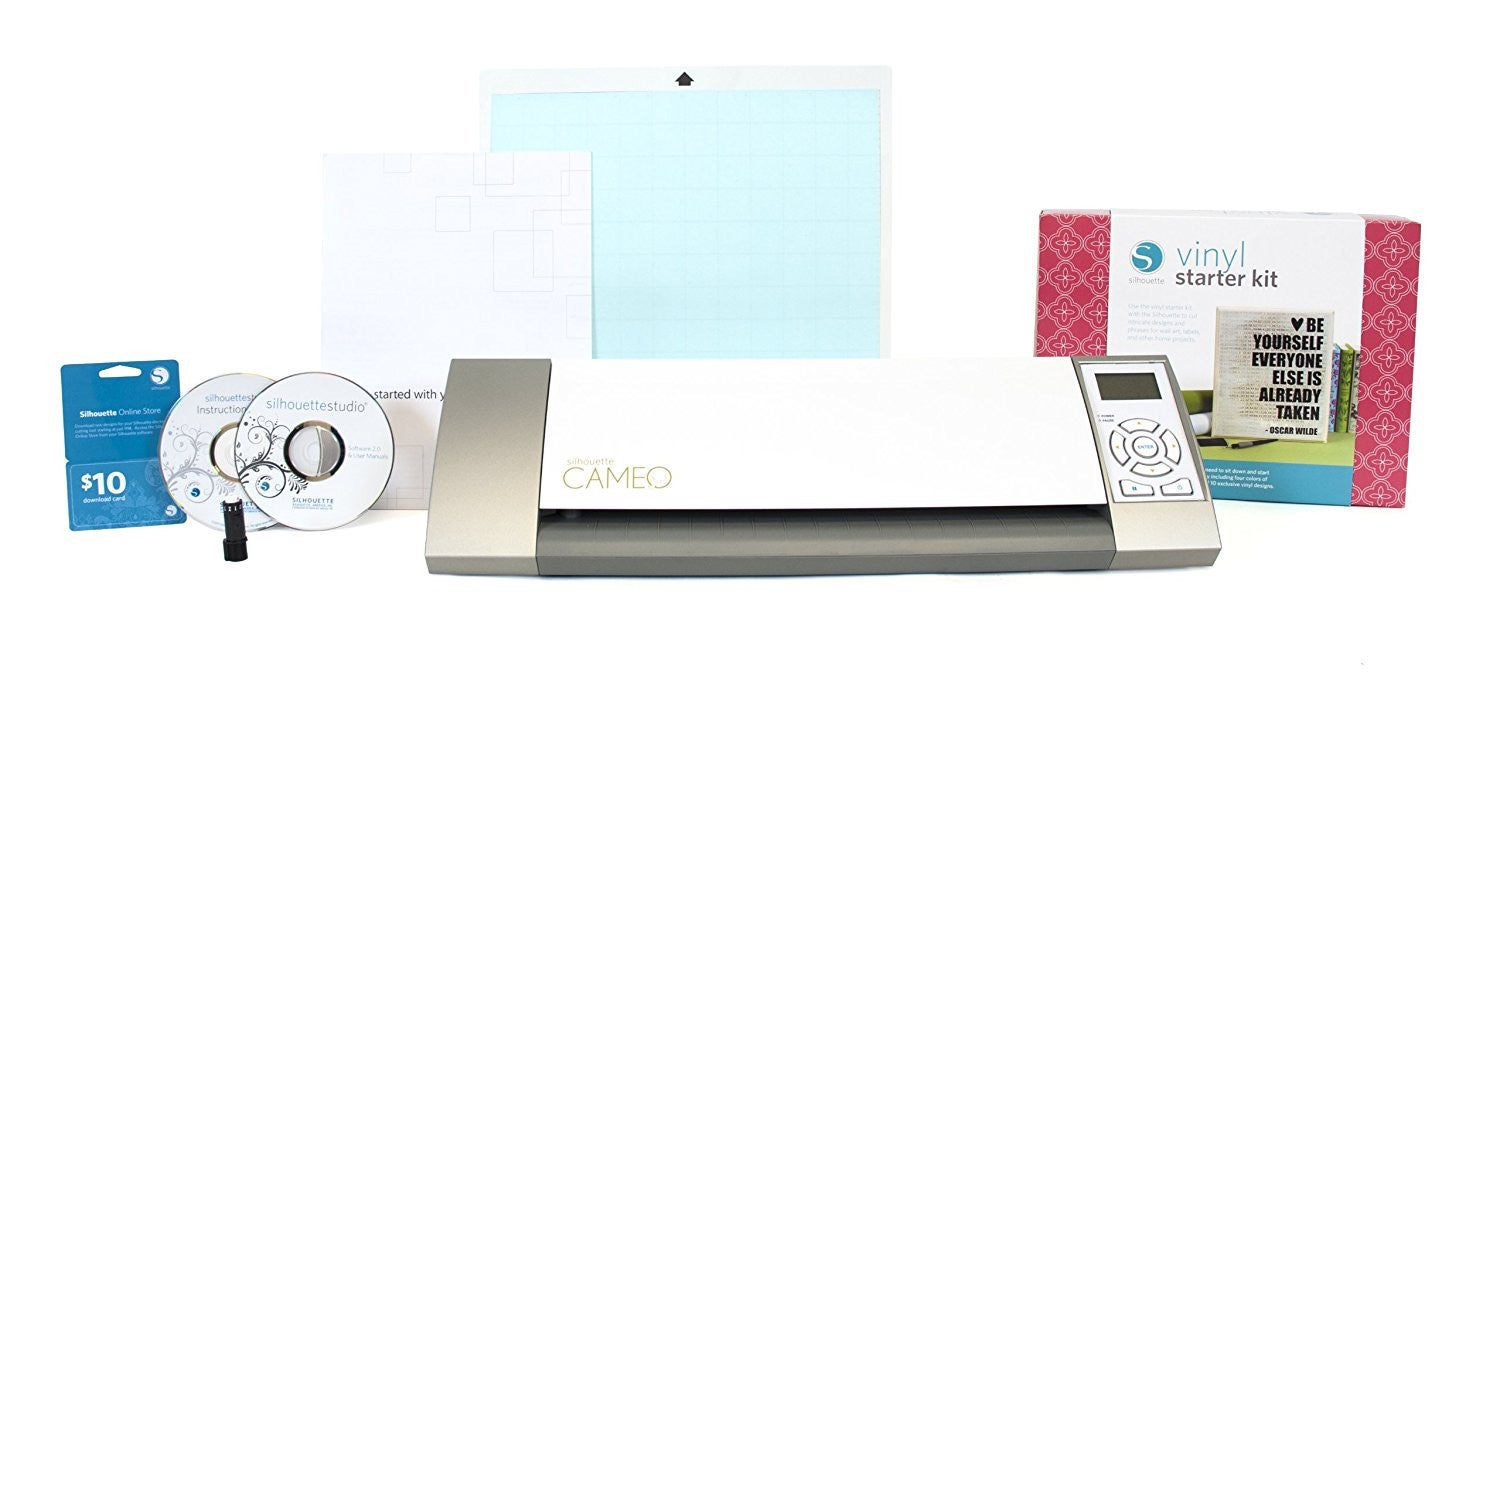 Silhouette Cameo Electronic Cutting Tool with Vinyl Patte...